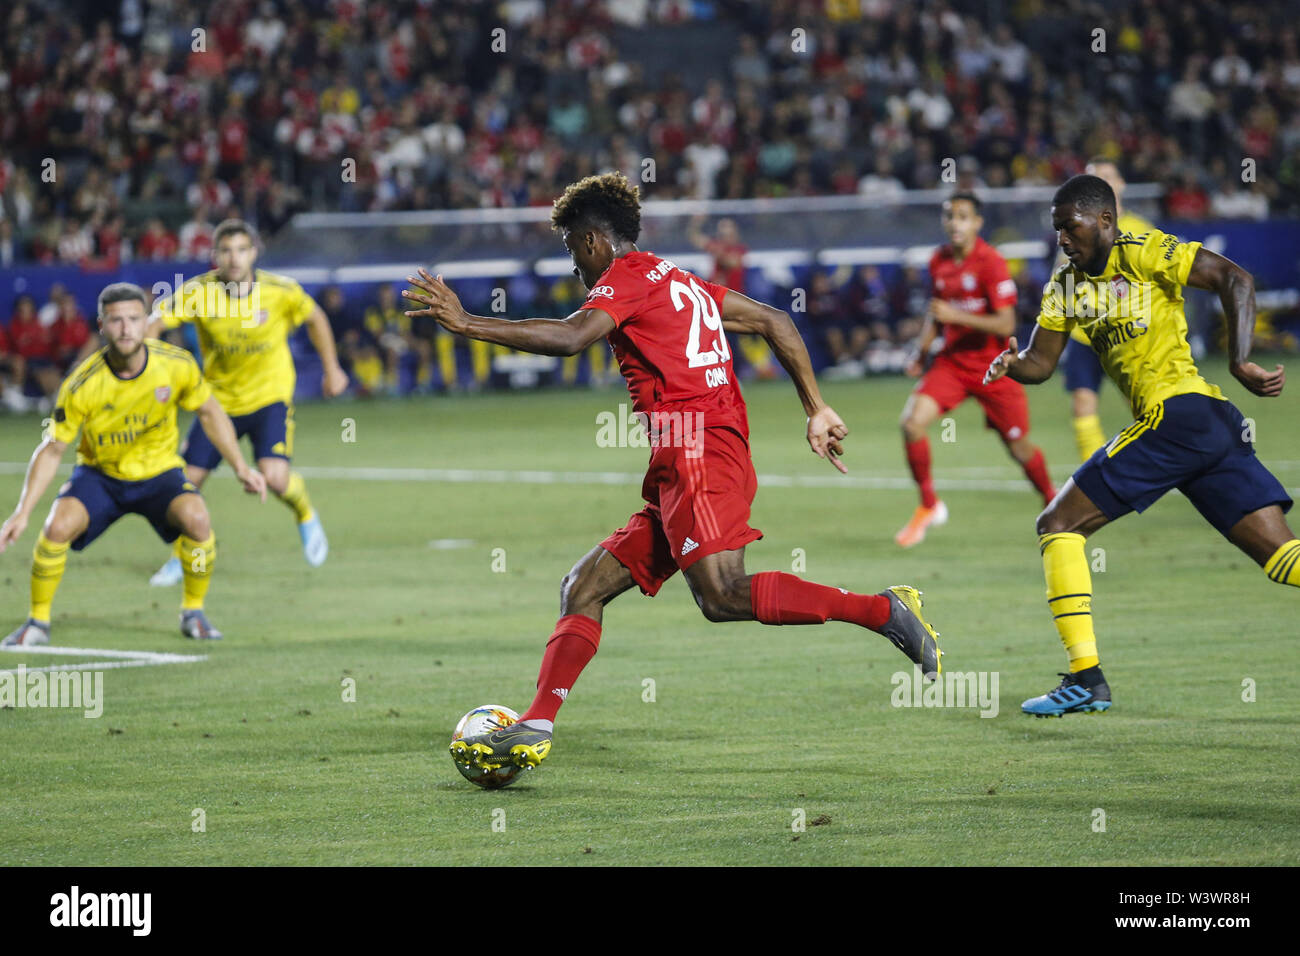 Los Angeles, California, USA. 17th July, 2019. Bayern Munich midfielder Kingsley Coman (29) drives the ball during the 2019 International Champions Cup (ICC) match between Arsenal and Bayern Munich in Carson, California, July 17, 2019. Arsenal won 2-1. Credit: Ringo Chiu/ZUMA Wire/Alamy Live News - Stock Image